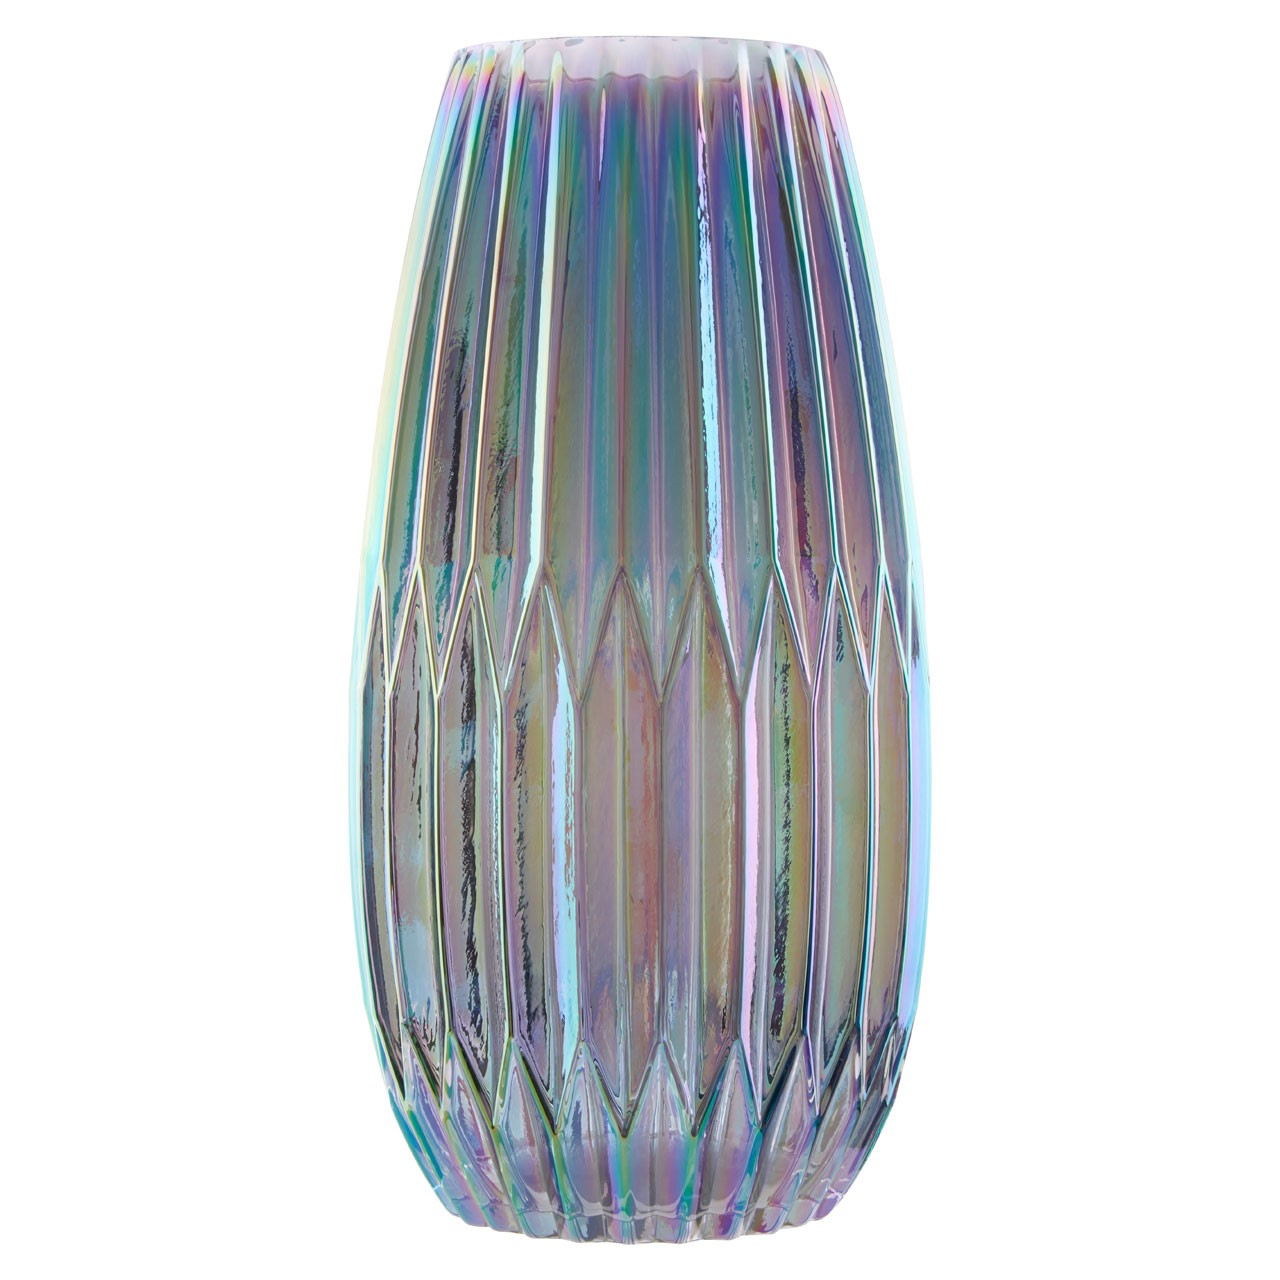 Petro Large Oil Slick Vase